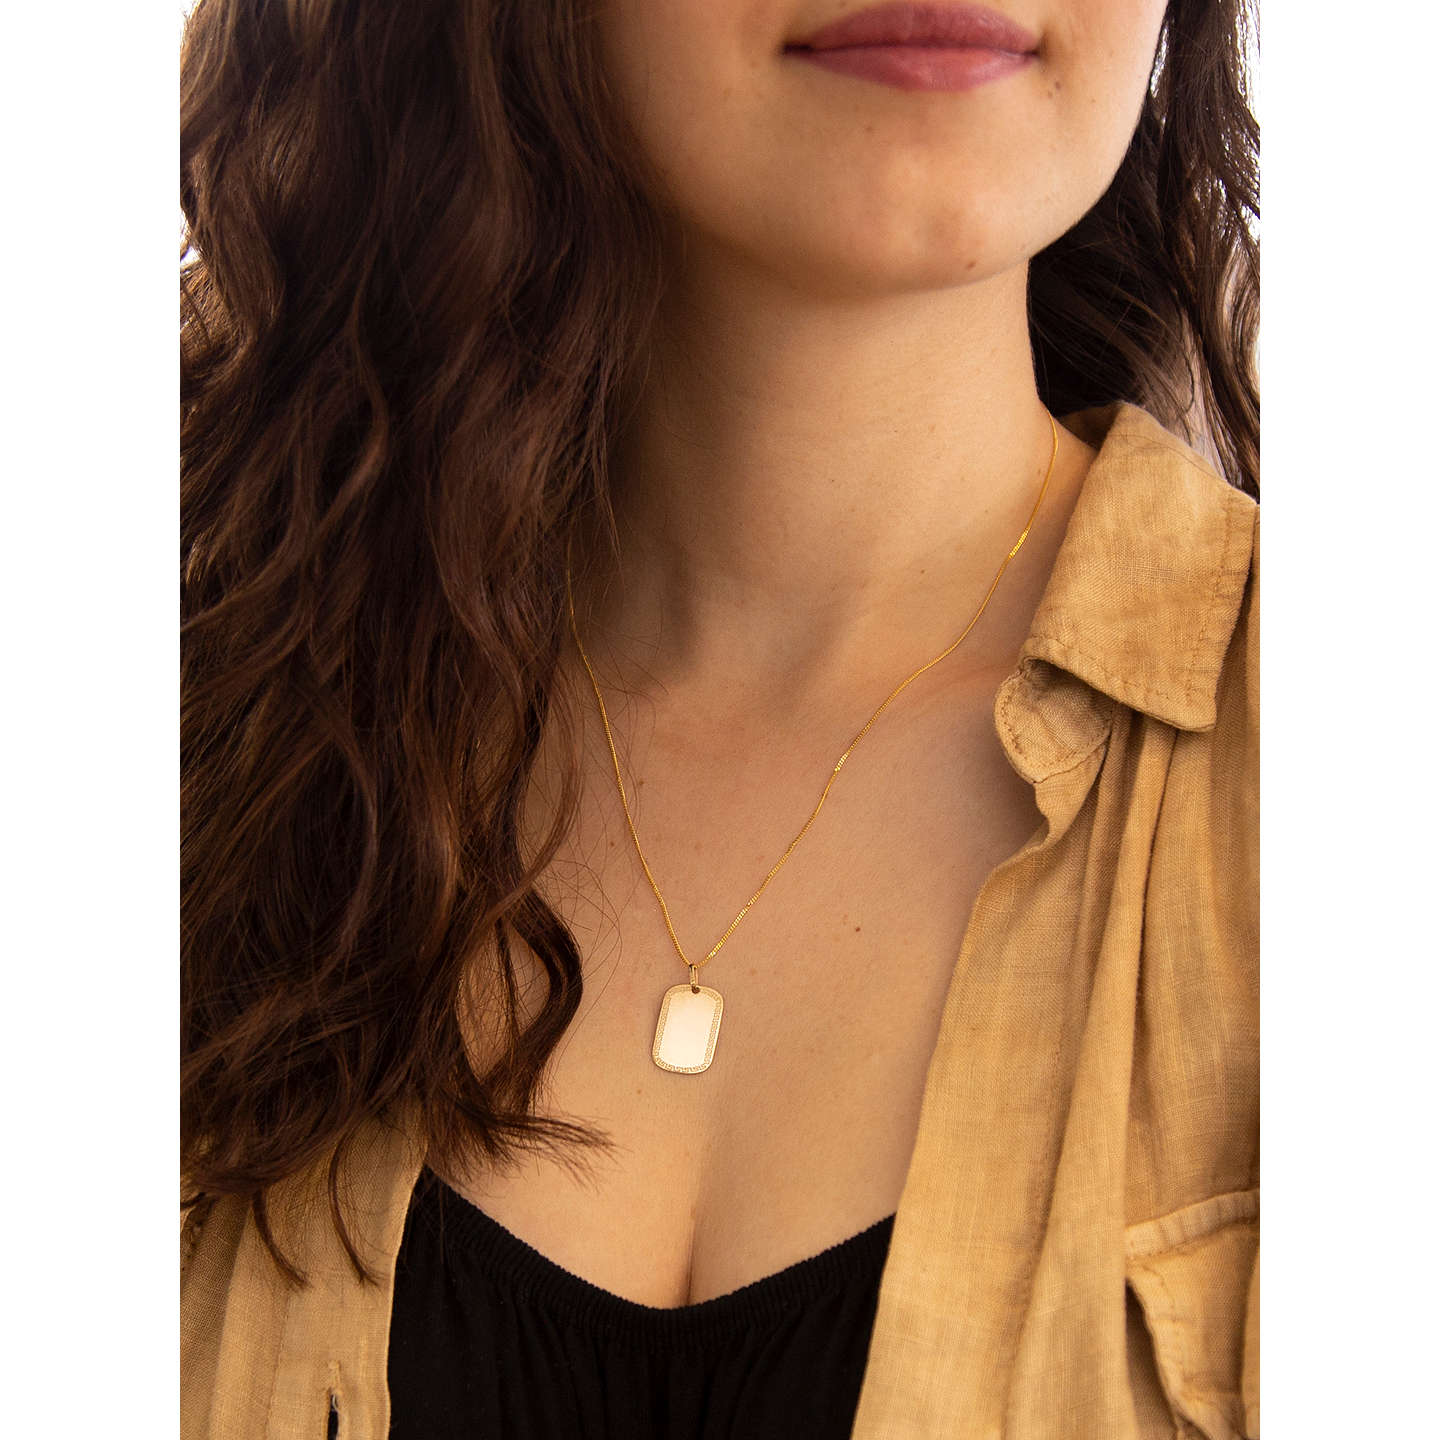 Ibb 9ct yellow gold grecian dog tag pendant gold at john lewis buyibb 9ct yellow gold grecian dog tag pendant gold online at johnlewis aloadofball Choice Image